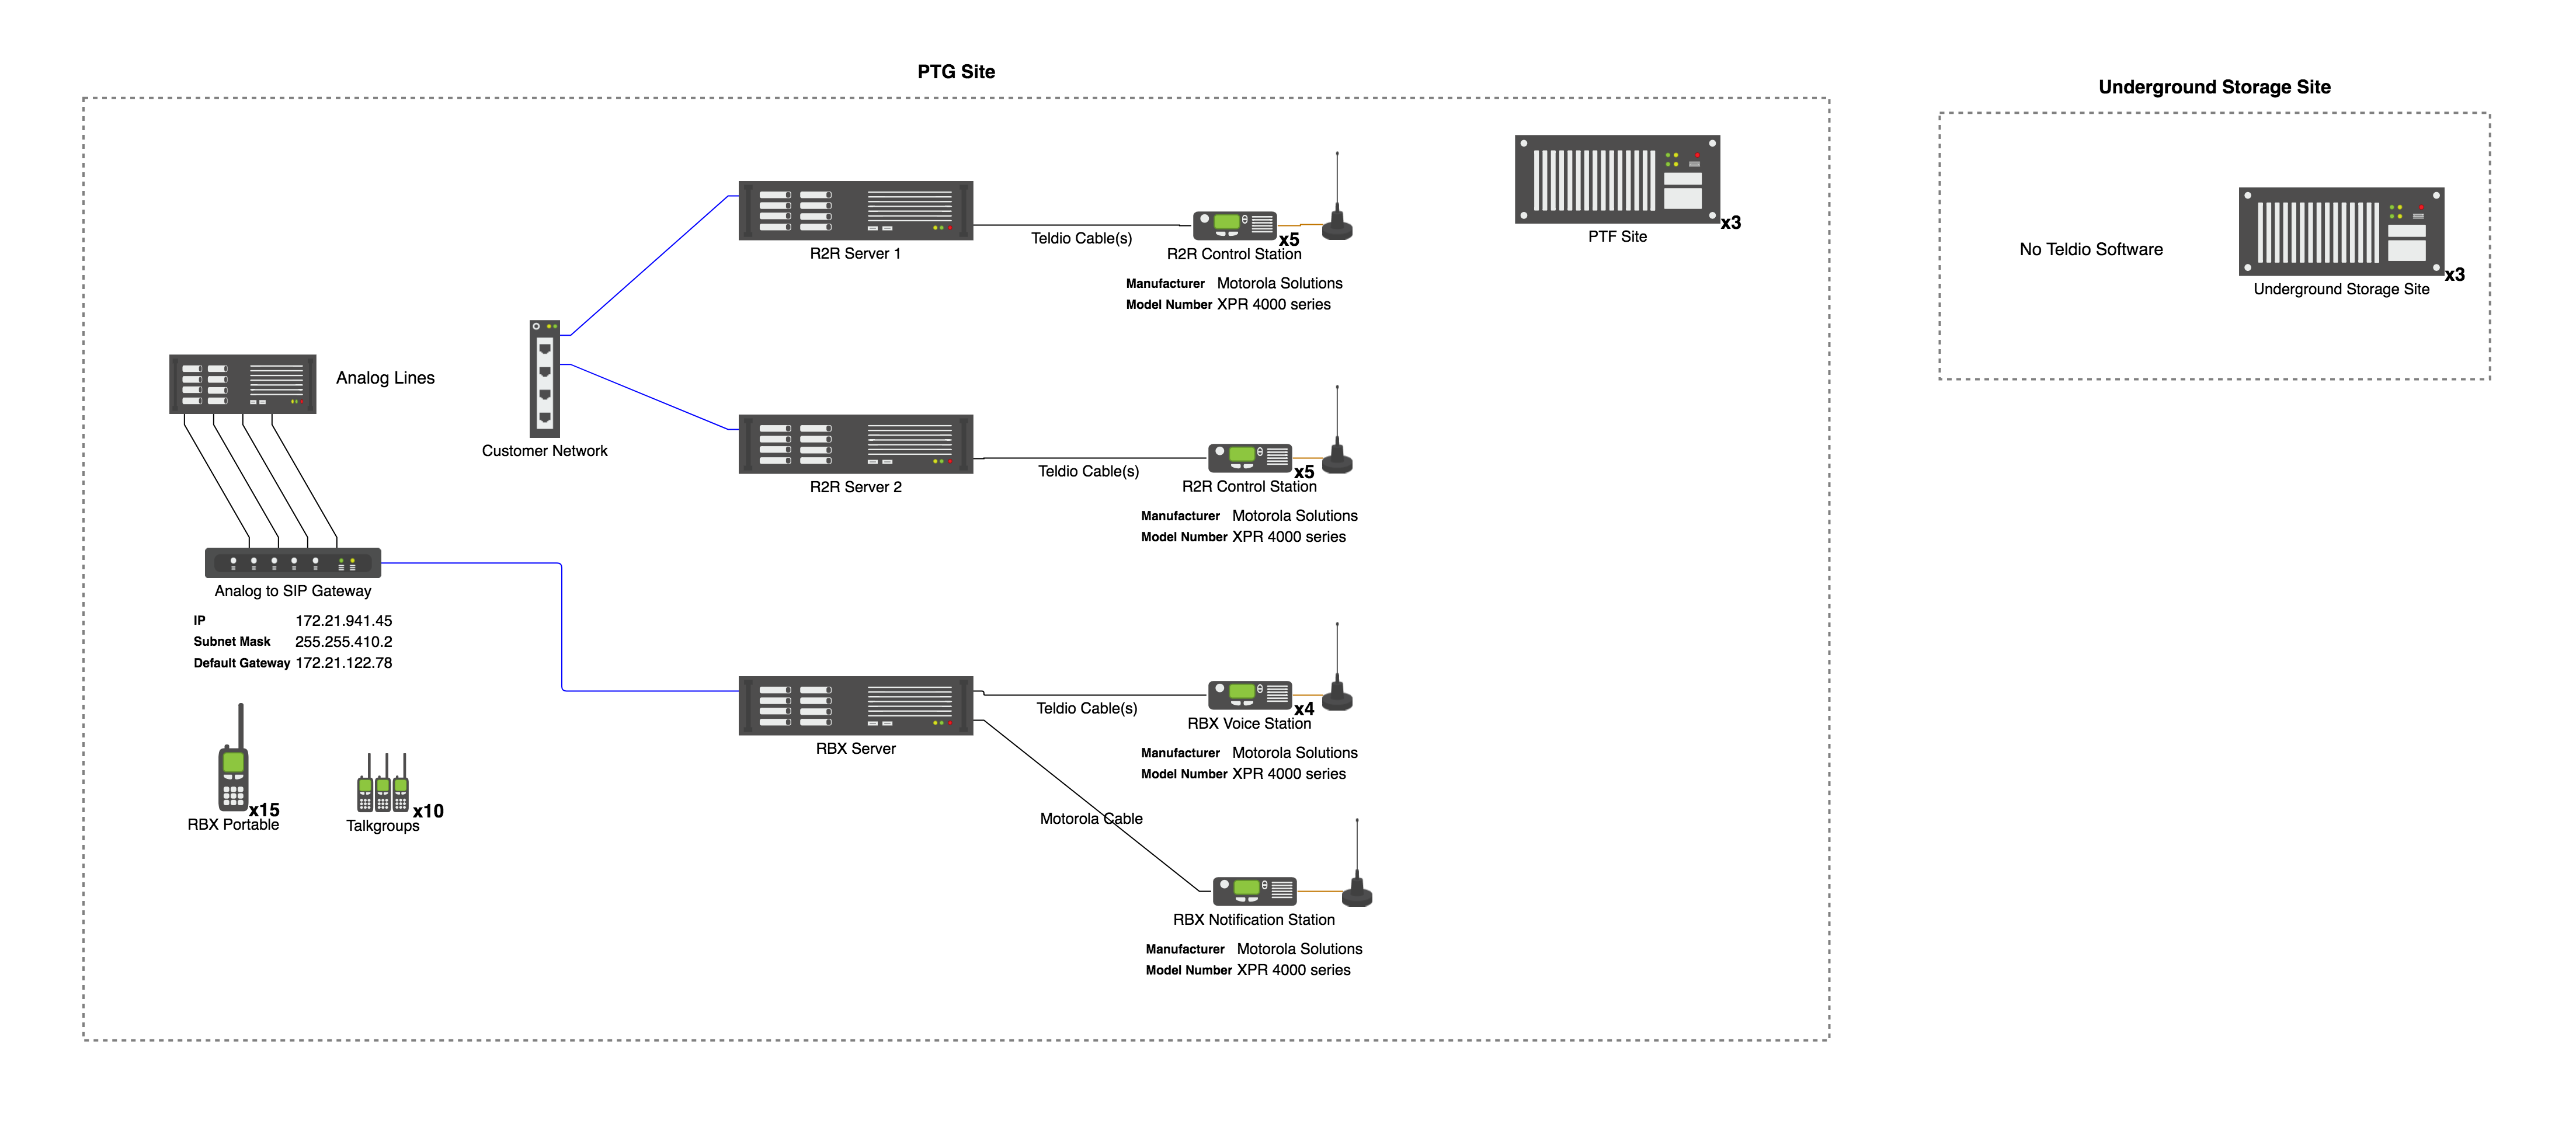 If a Picture is Worth a Thousand Words, a Network Diagram Could be Worth Millions!